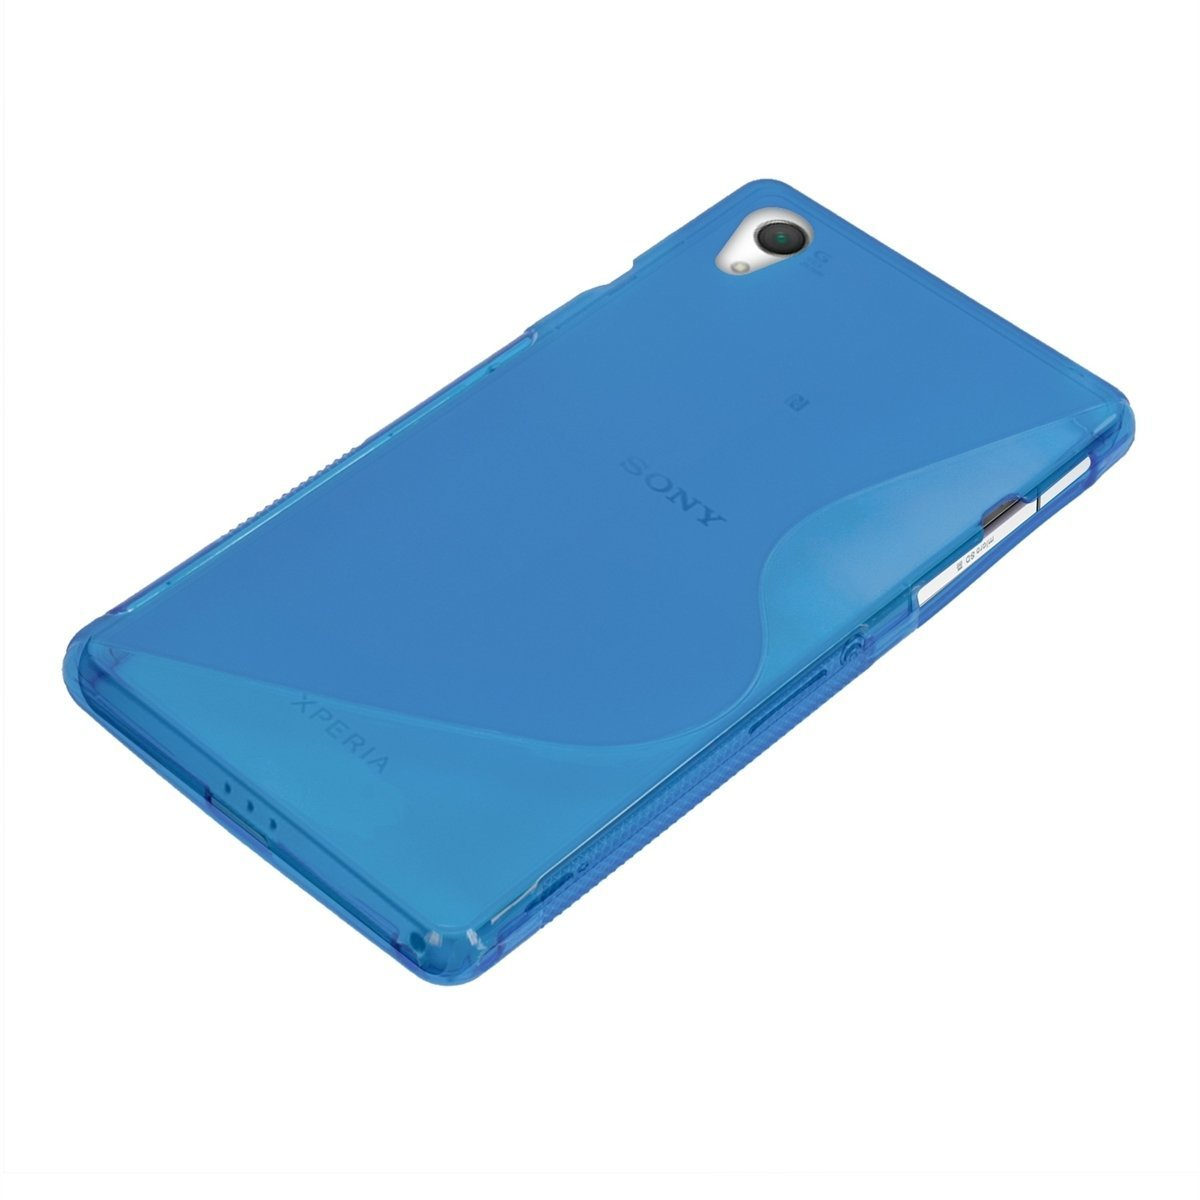 XPERIA Z2 グリップデザインケース TPU Cover Case 落下防止ソフトカバー